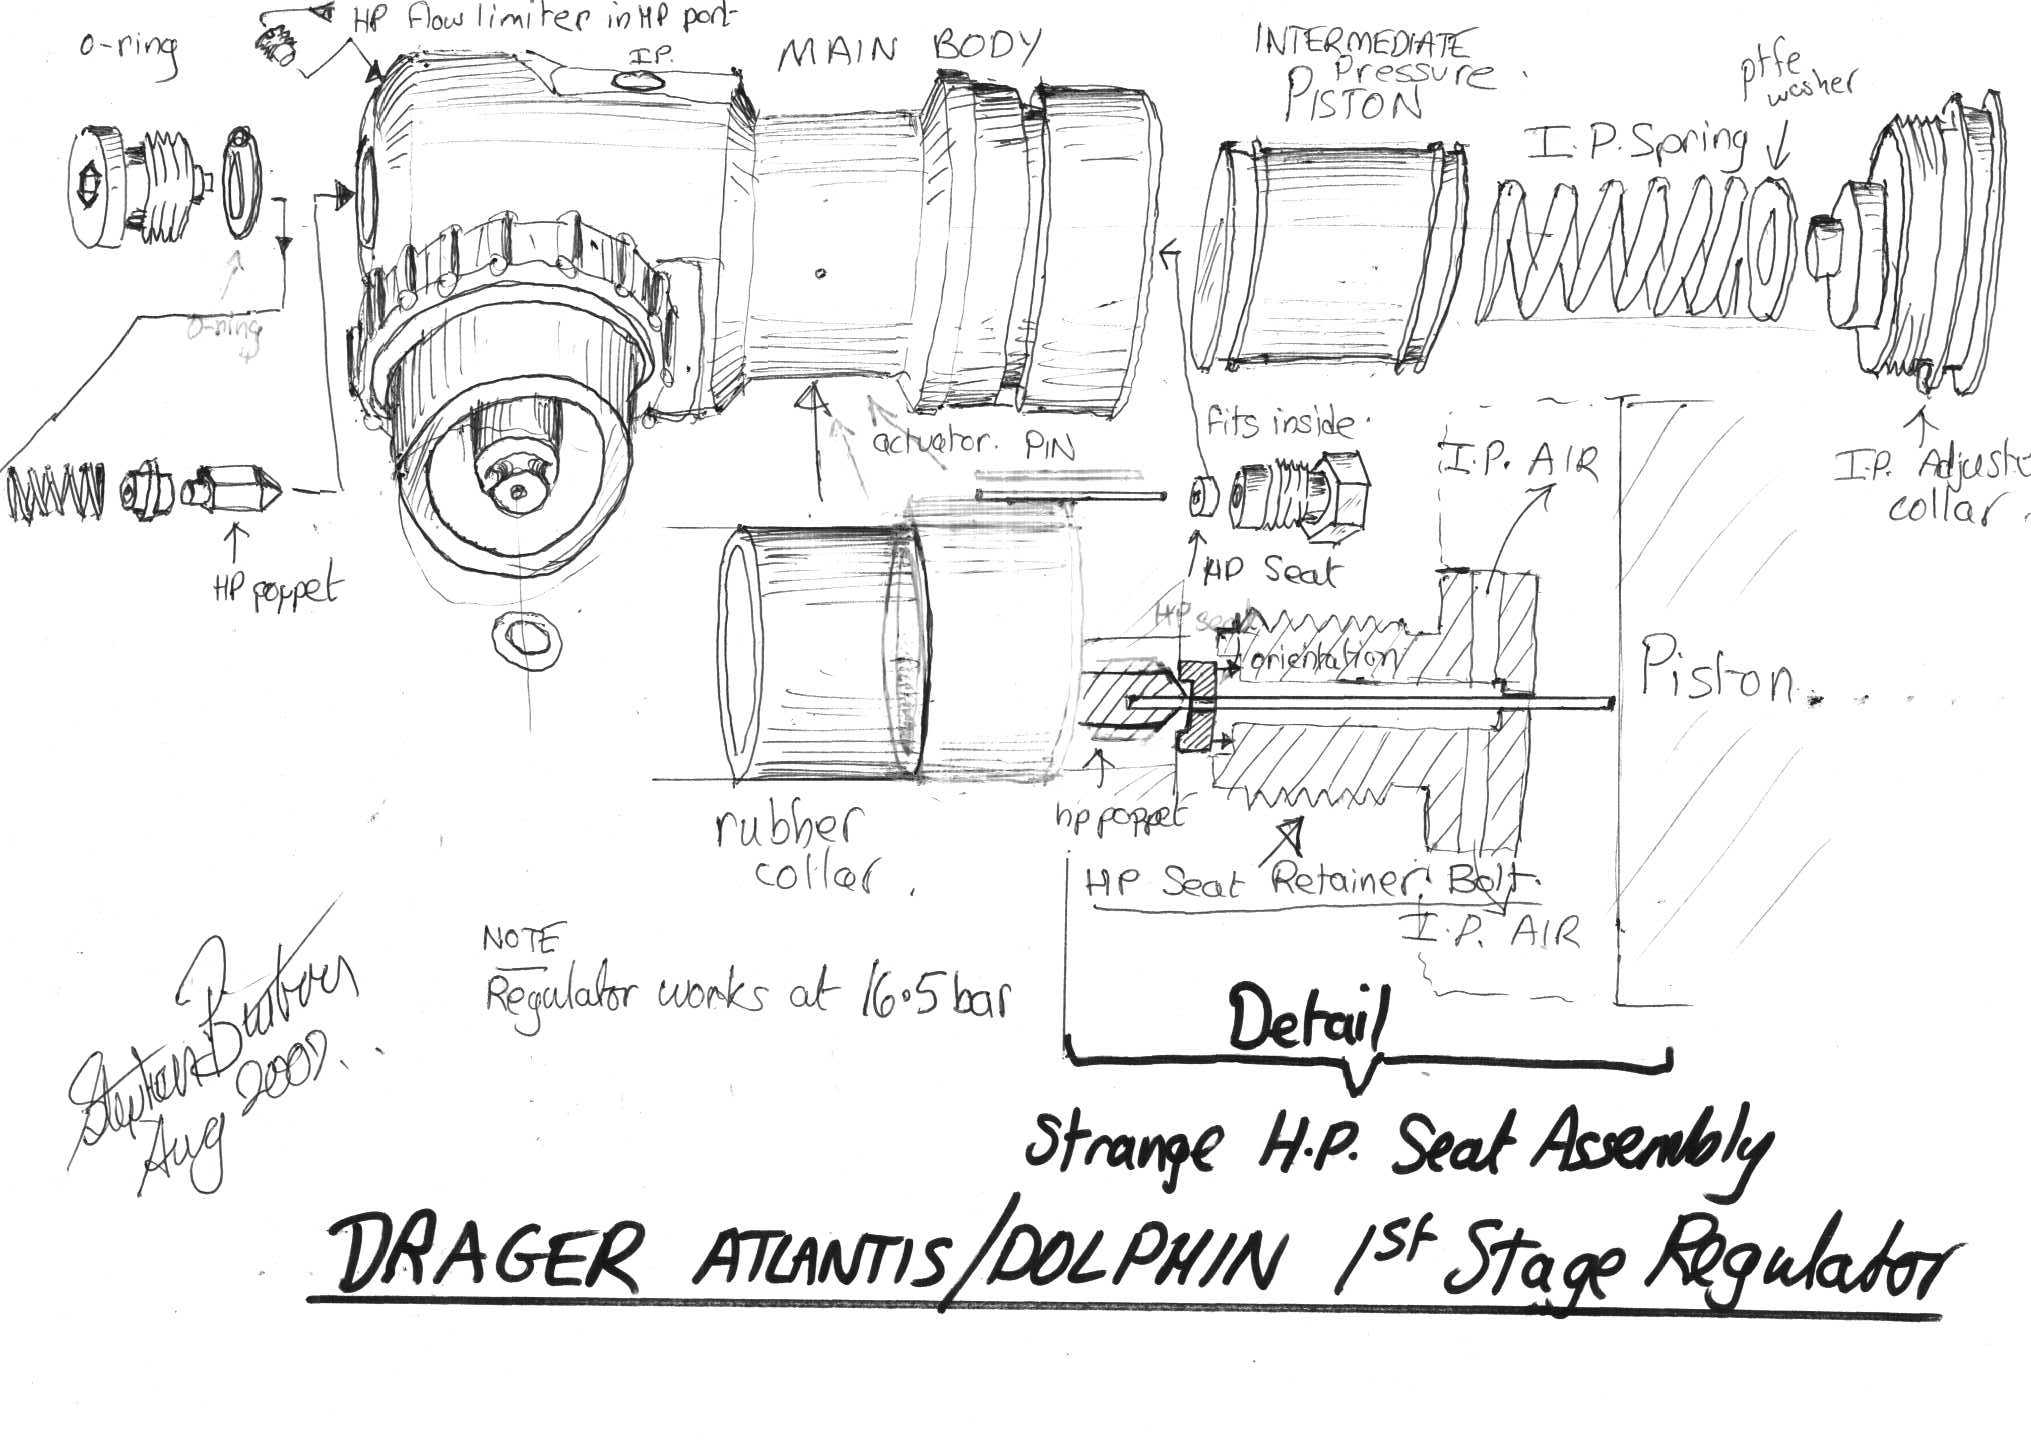 Wiring Diagram For Drager : 25 Wiring Diagram Images